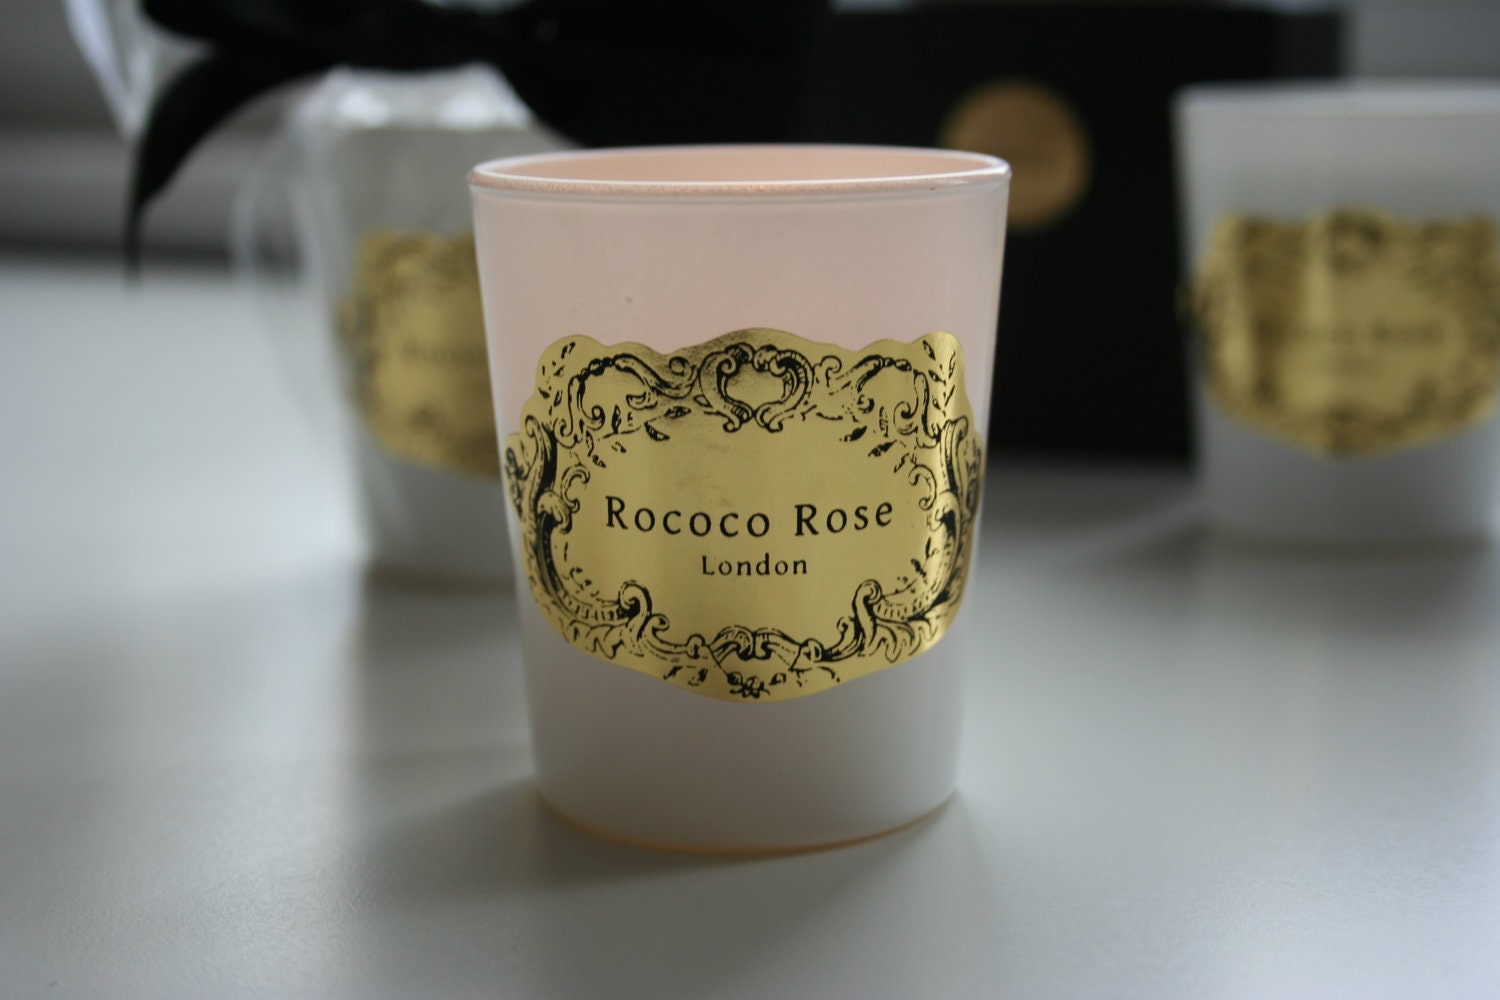 Villiers Handmade Soy Container Votive Candle - Mimosa Scent - RococoRoseLondon